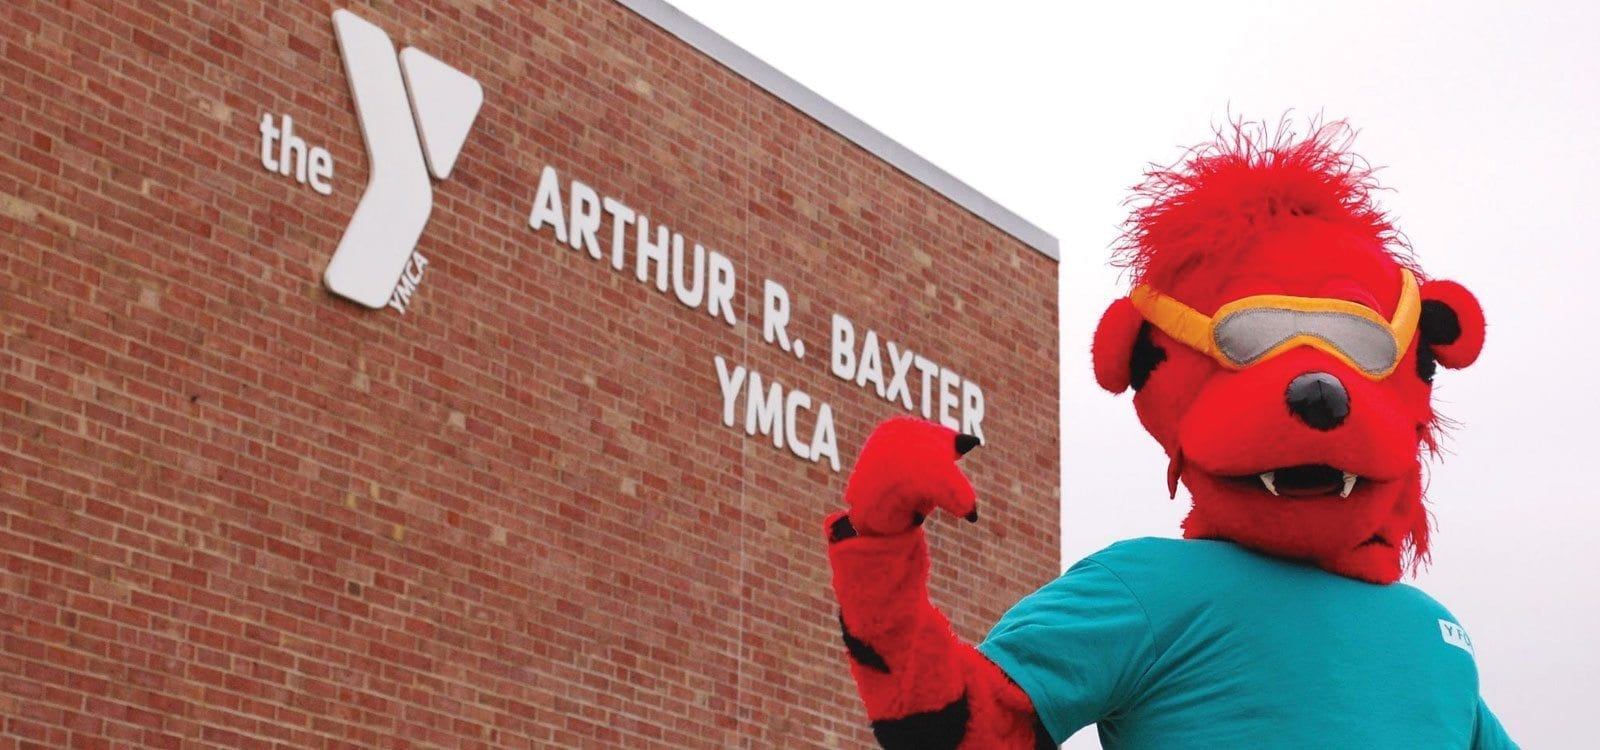 Baxter YMCA | YMCA Centers | YMCA of Greater Indianapolis